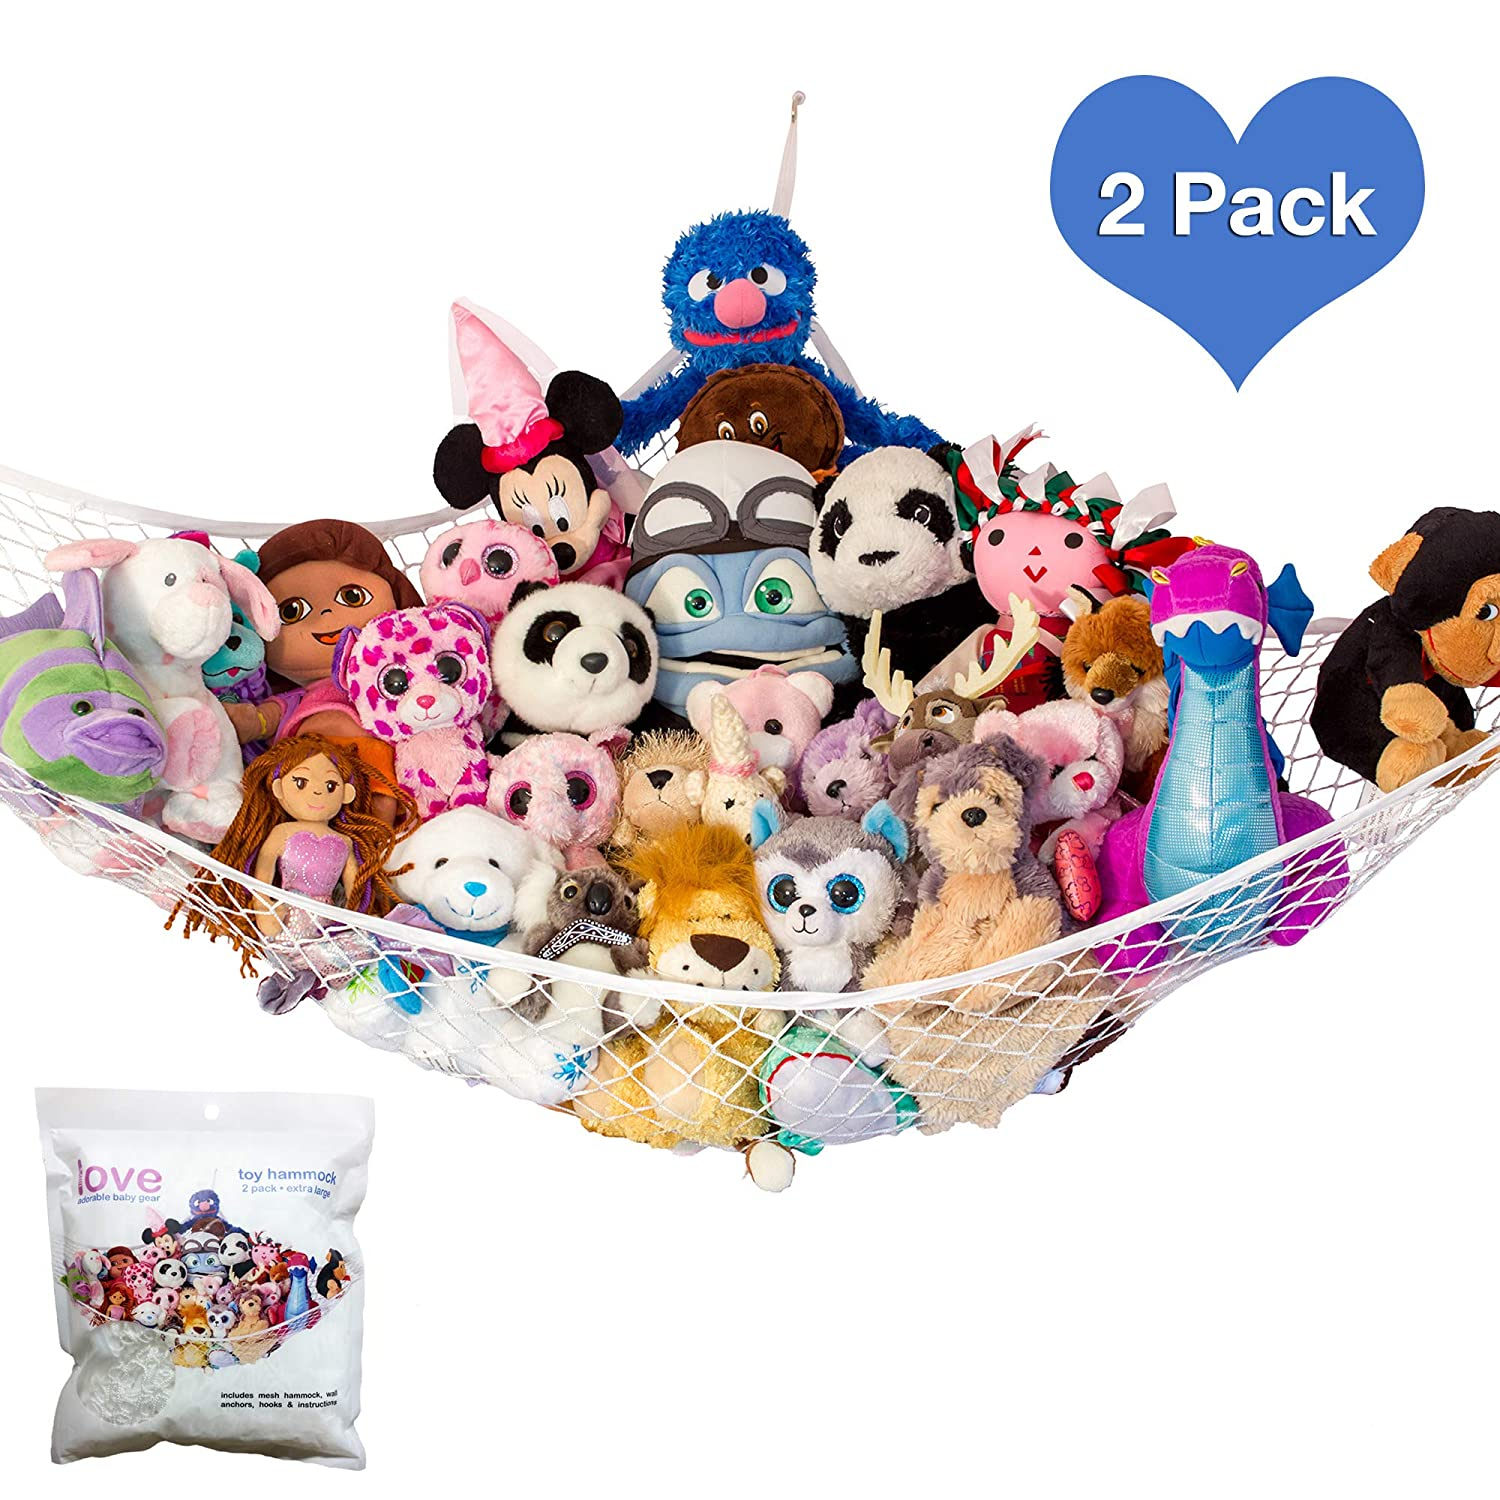 2x Toy Stuffed Animals Net Stuffie Party Hammock Stuffed Animal Storage by Lilly's Love Lilly's Love ToyN2PAC